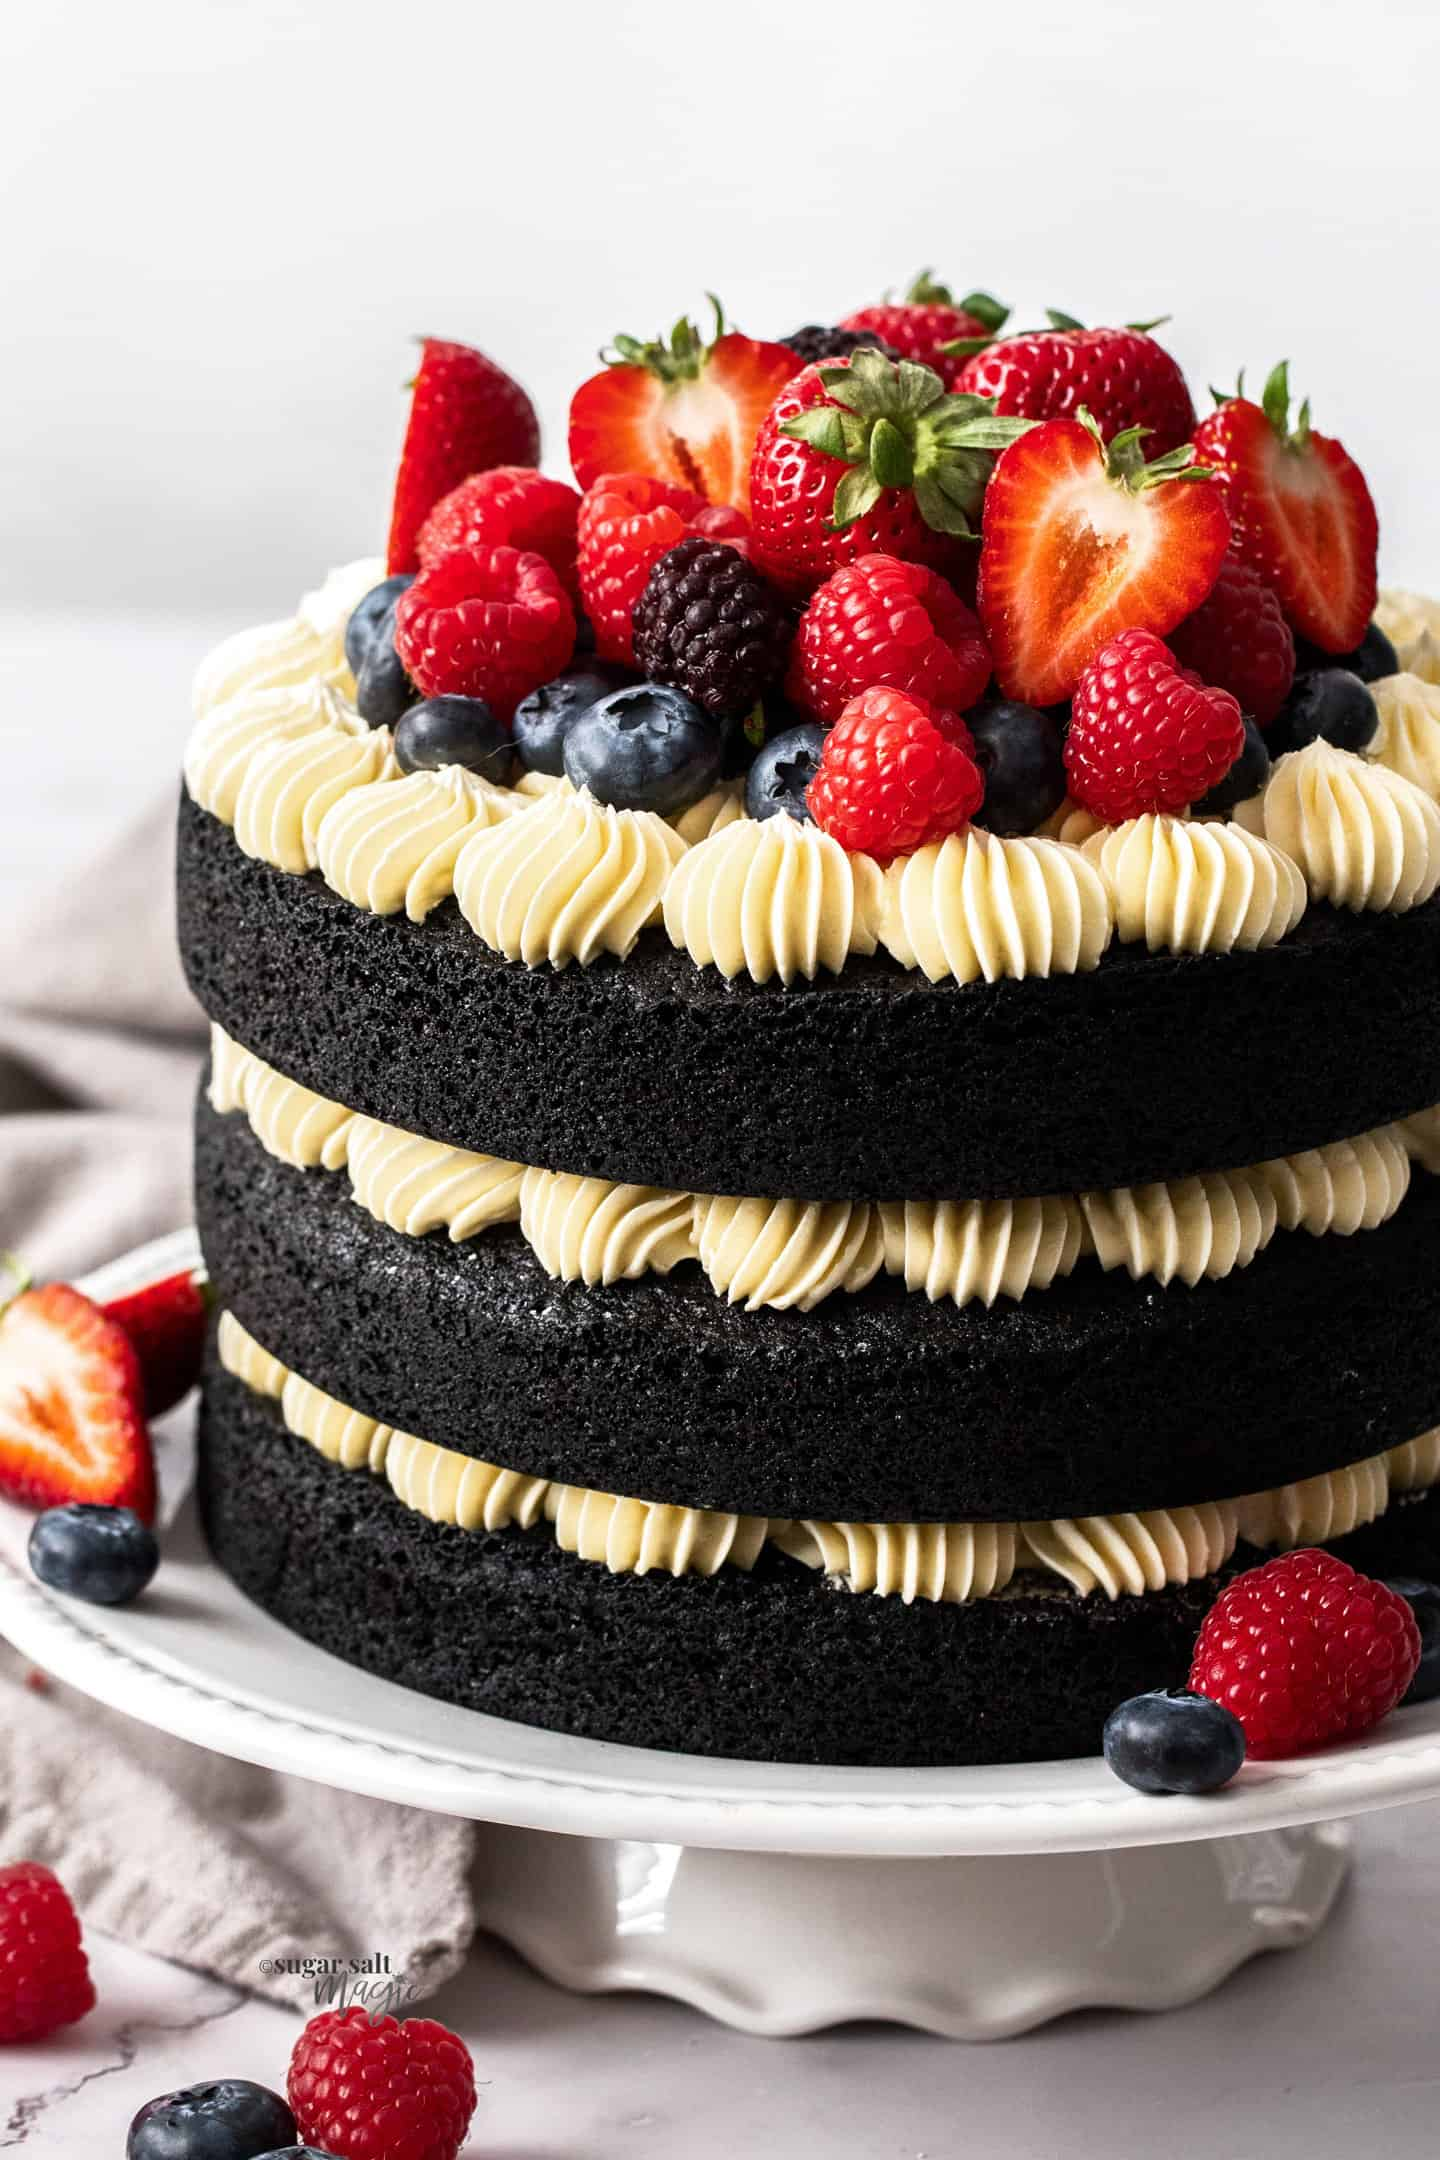 A 3 layer dark chocolate cake loaded with berries and white frosting.